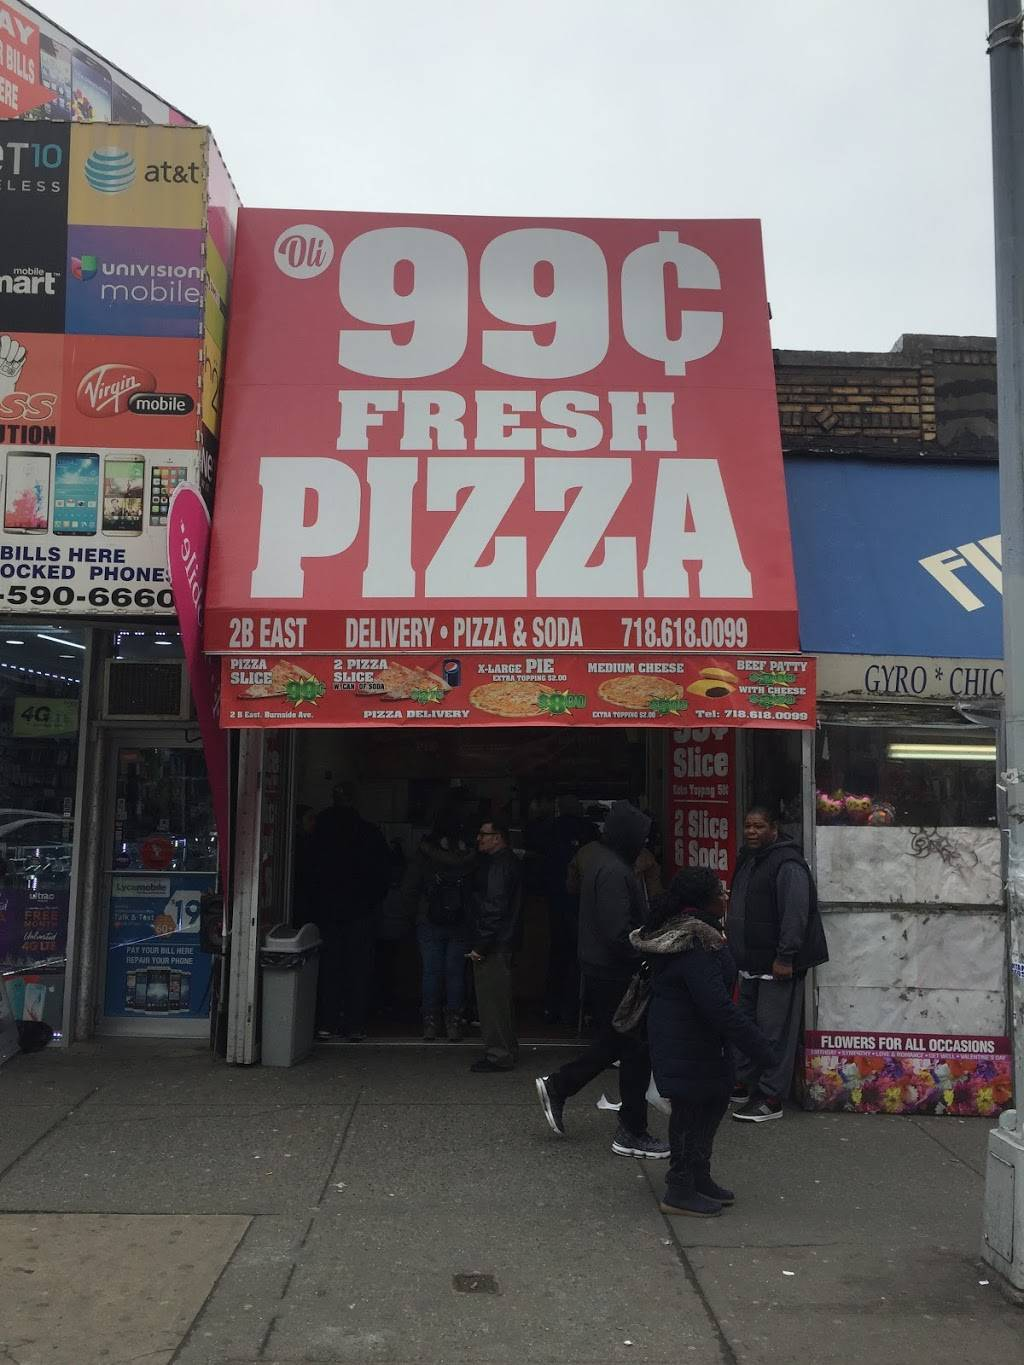 Oli 99 Cent Fresh Pizza | restaurant | 2 E Burnside Ave, Bronx, NY 10453, USA | 7186180099 OR +1 718-618-0099